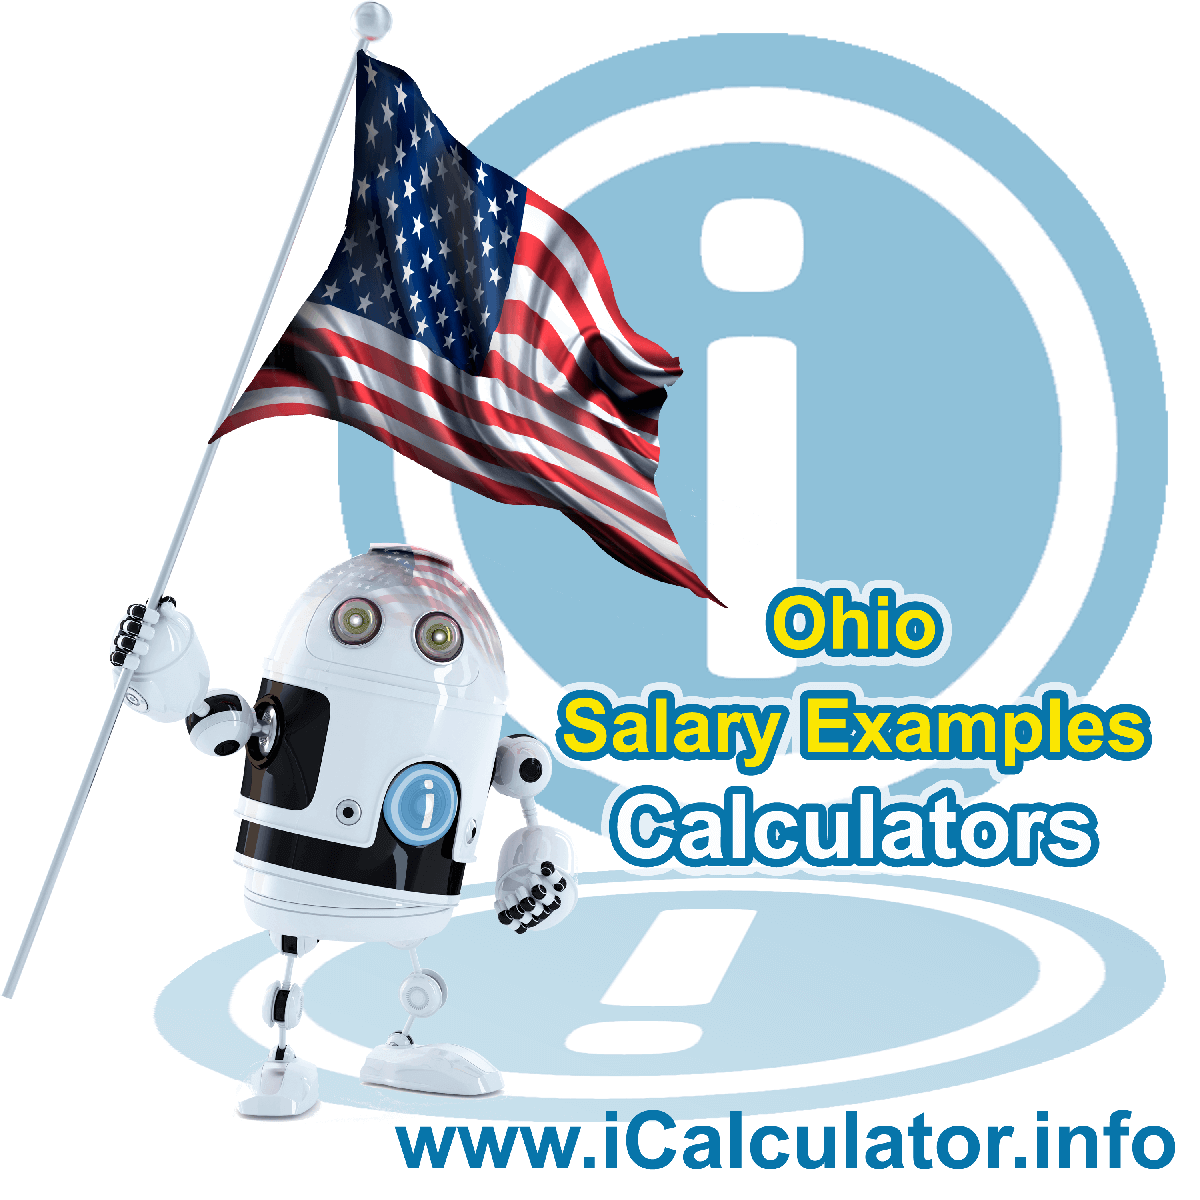 Ohio Salary Example for $180.00 in 2020 | iCalculator | $180.00 salary example for employee and employer paying Ohio State tincome taxes. Detailed salary after tax calculation including Ohio State Tax, Federal State Tax, Medicare Deductions, Social Security, Capital Gains and other income tax and salary deductions complete with supporting Ohio state tax tables